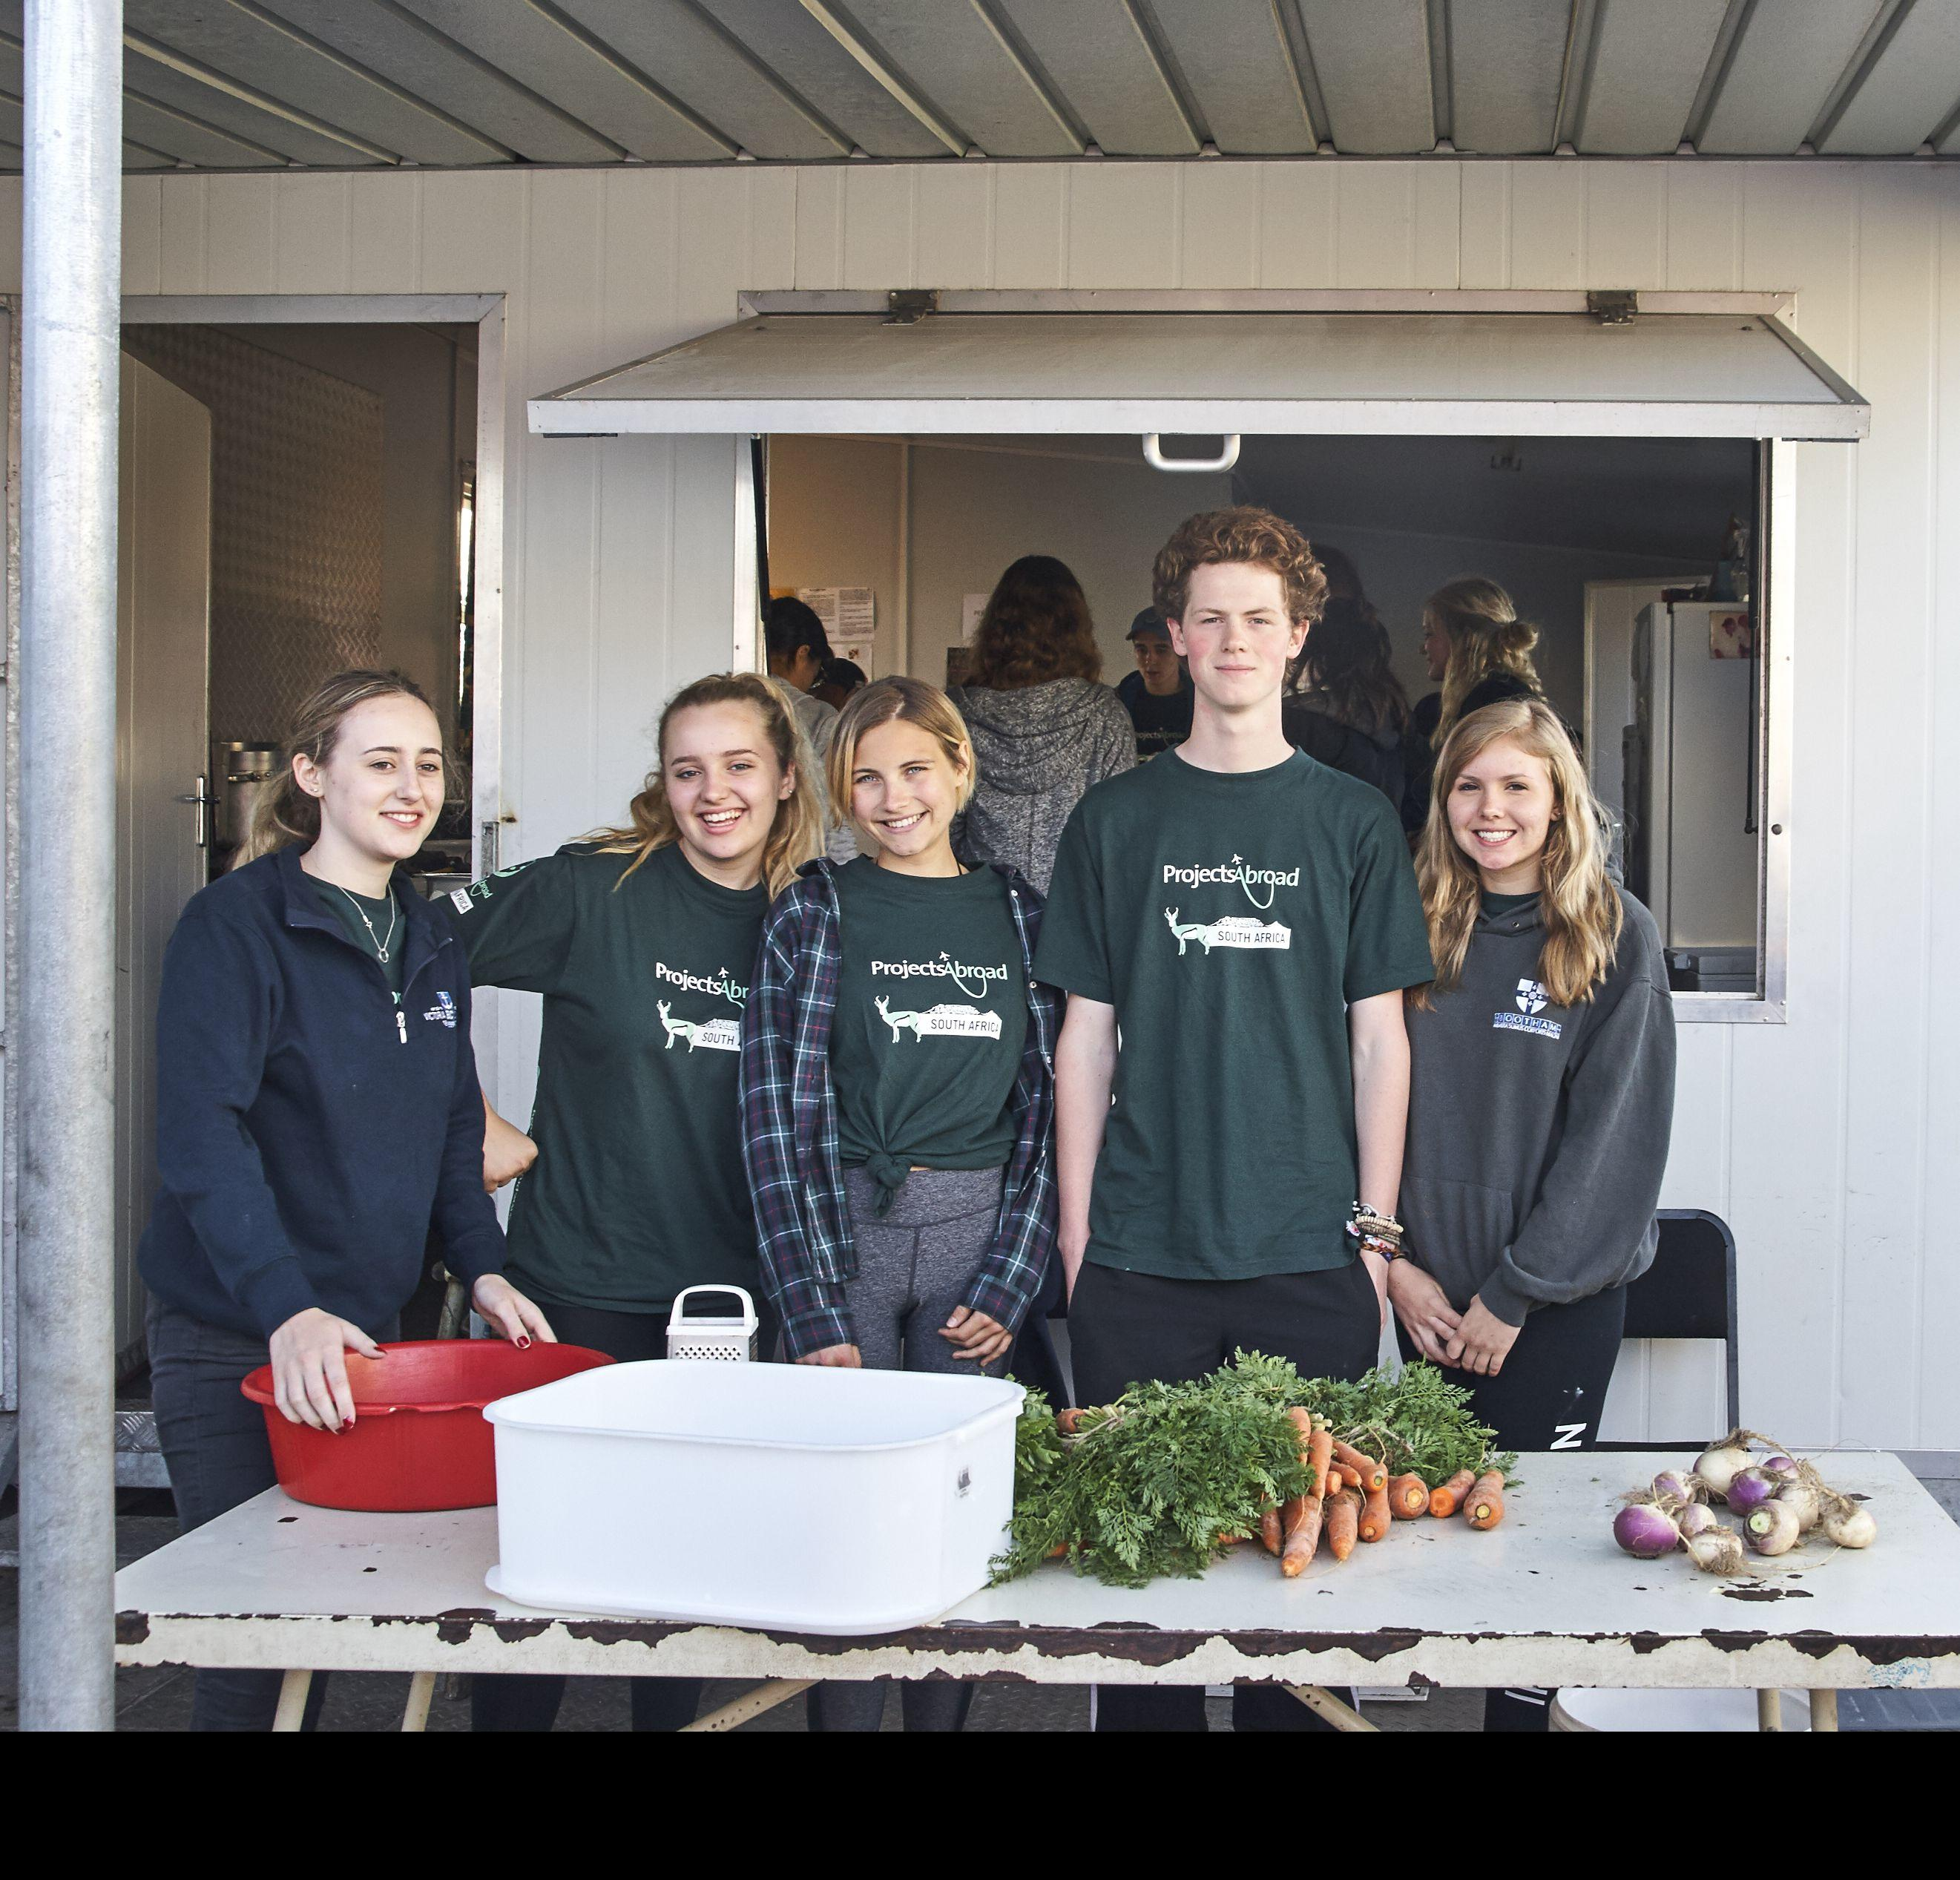 High school students prepare meals during volunteer work in South Africa for teenagers